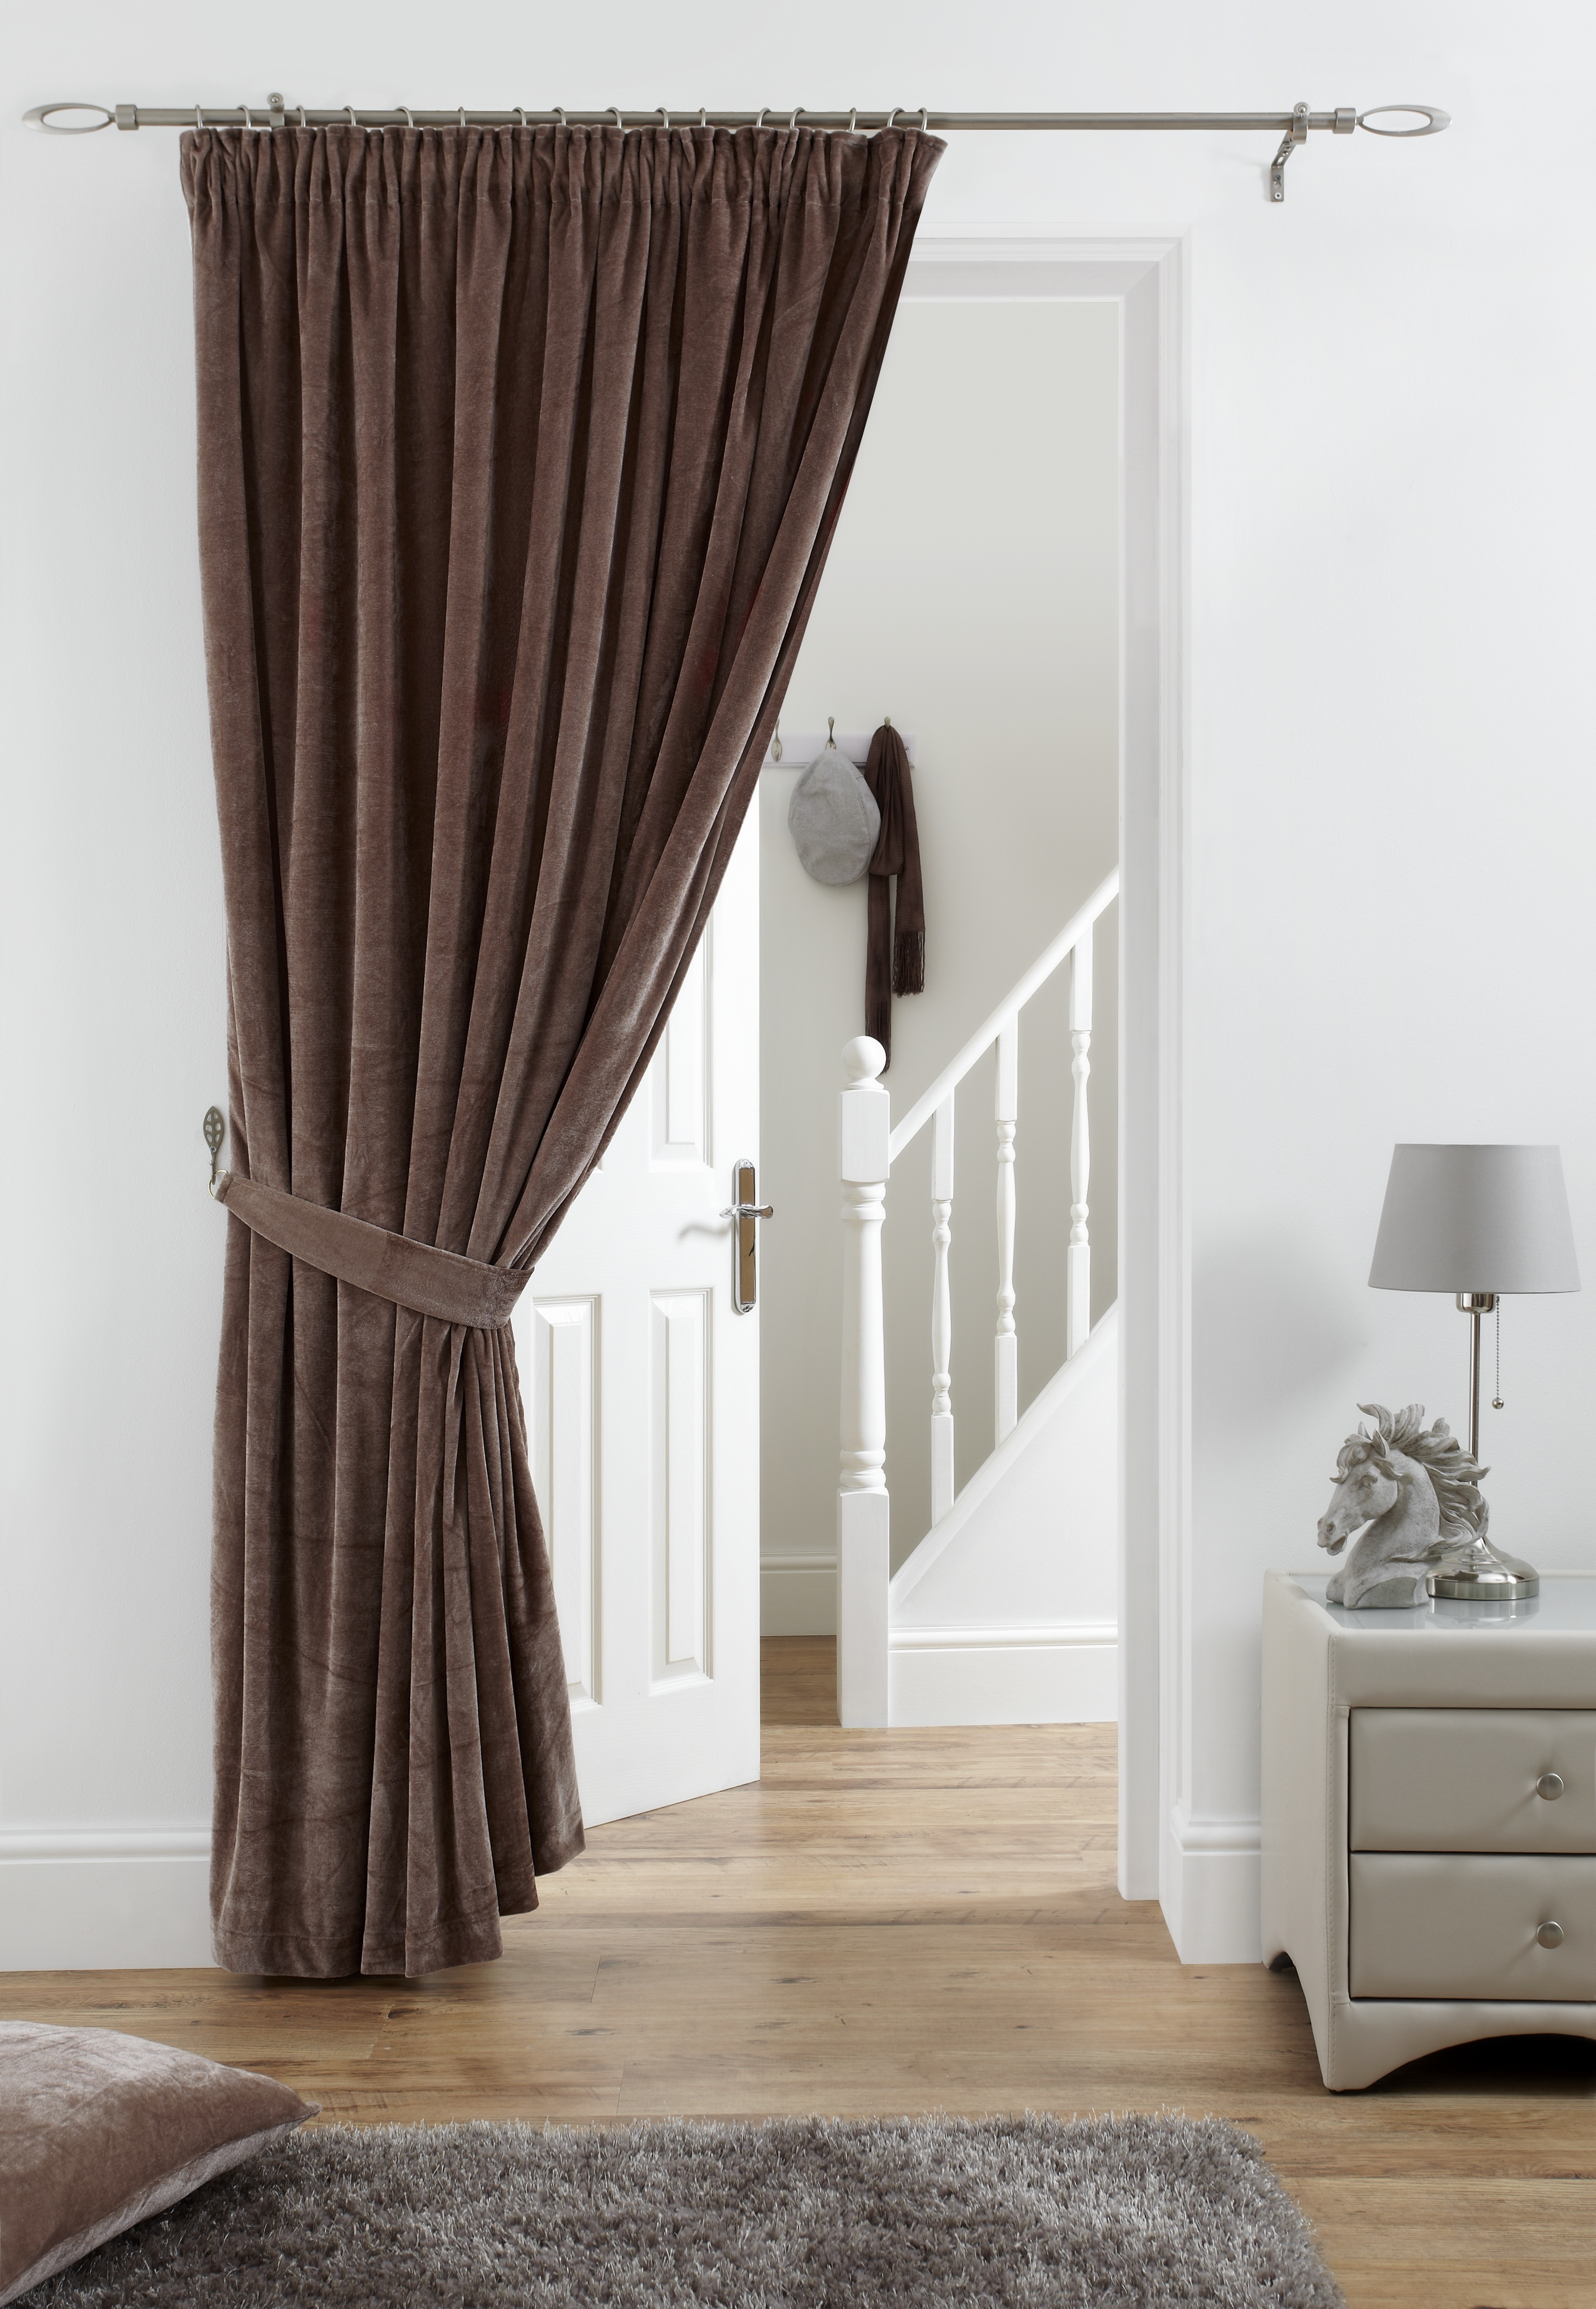 Velvet Door Curtain Panel Pencil Pleat 66×84 Available In Pertaining To Velvet Door Curtain (View 3 of 15)